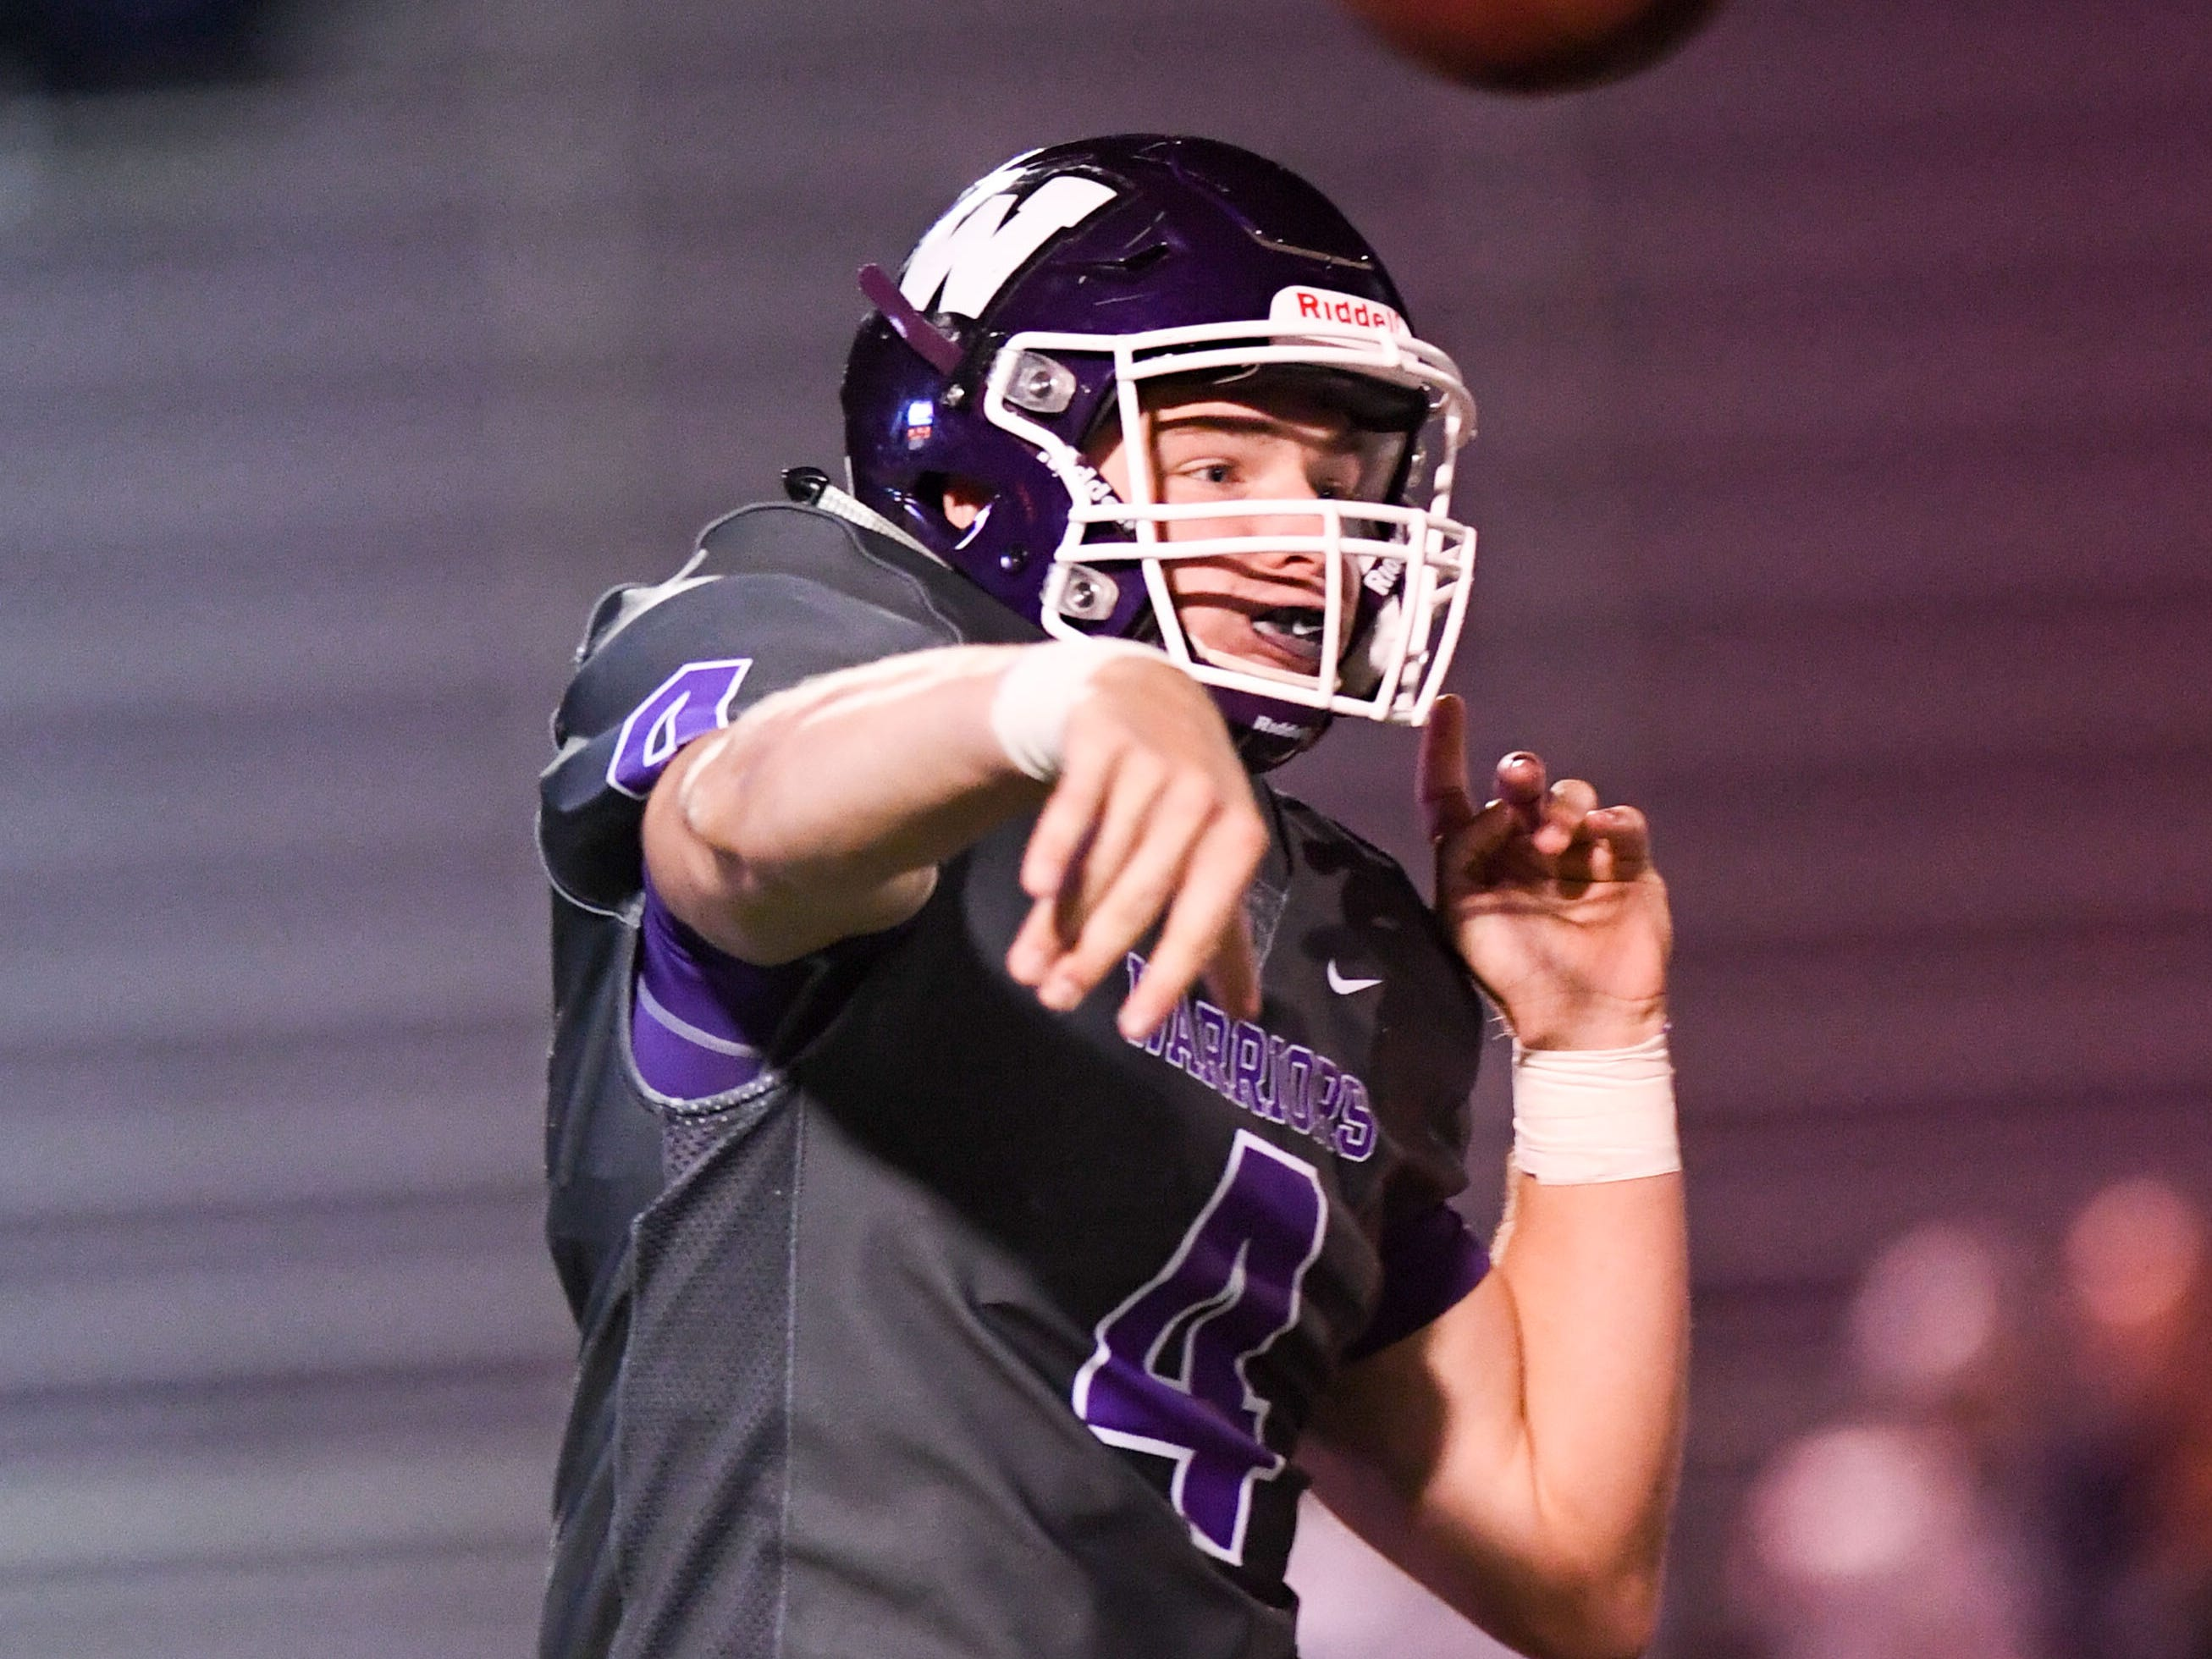 Waukee Quarterback Mitch Randall (4) makes a pass on Friday, Oct. 26, 2018 during a playoff game between the Waukee Warriors and the Urbandale J-Hawks at Waukee High School.